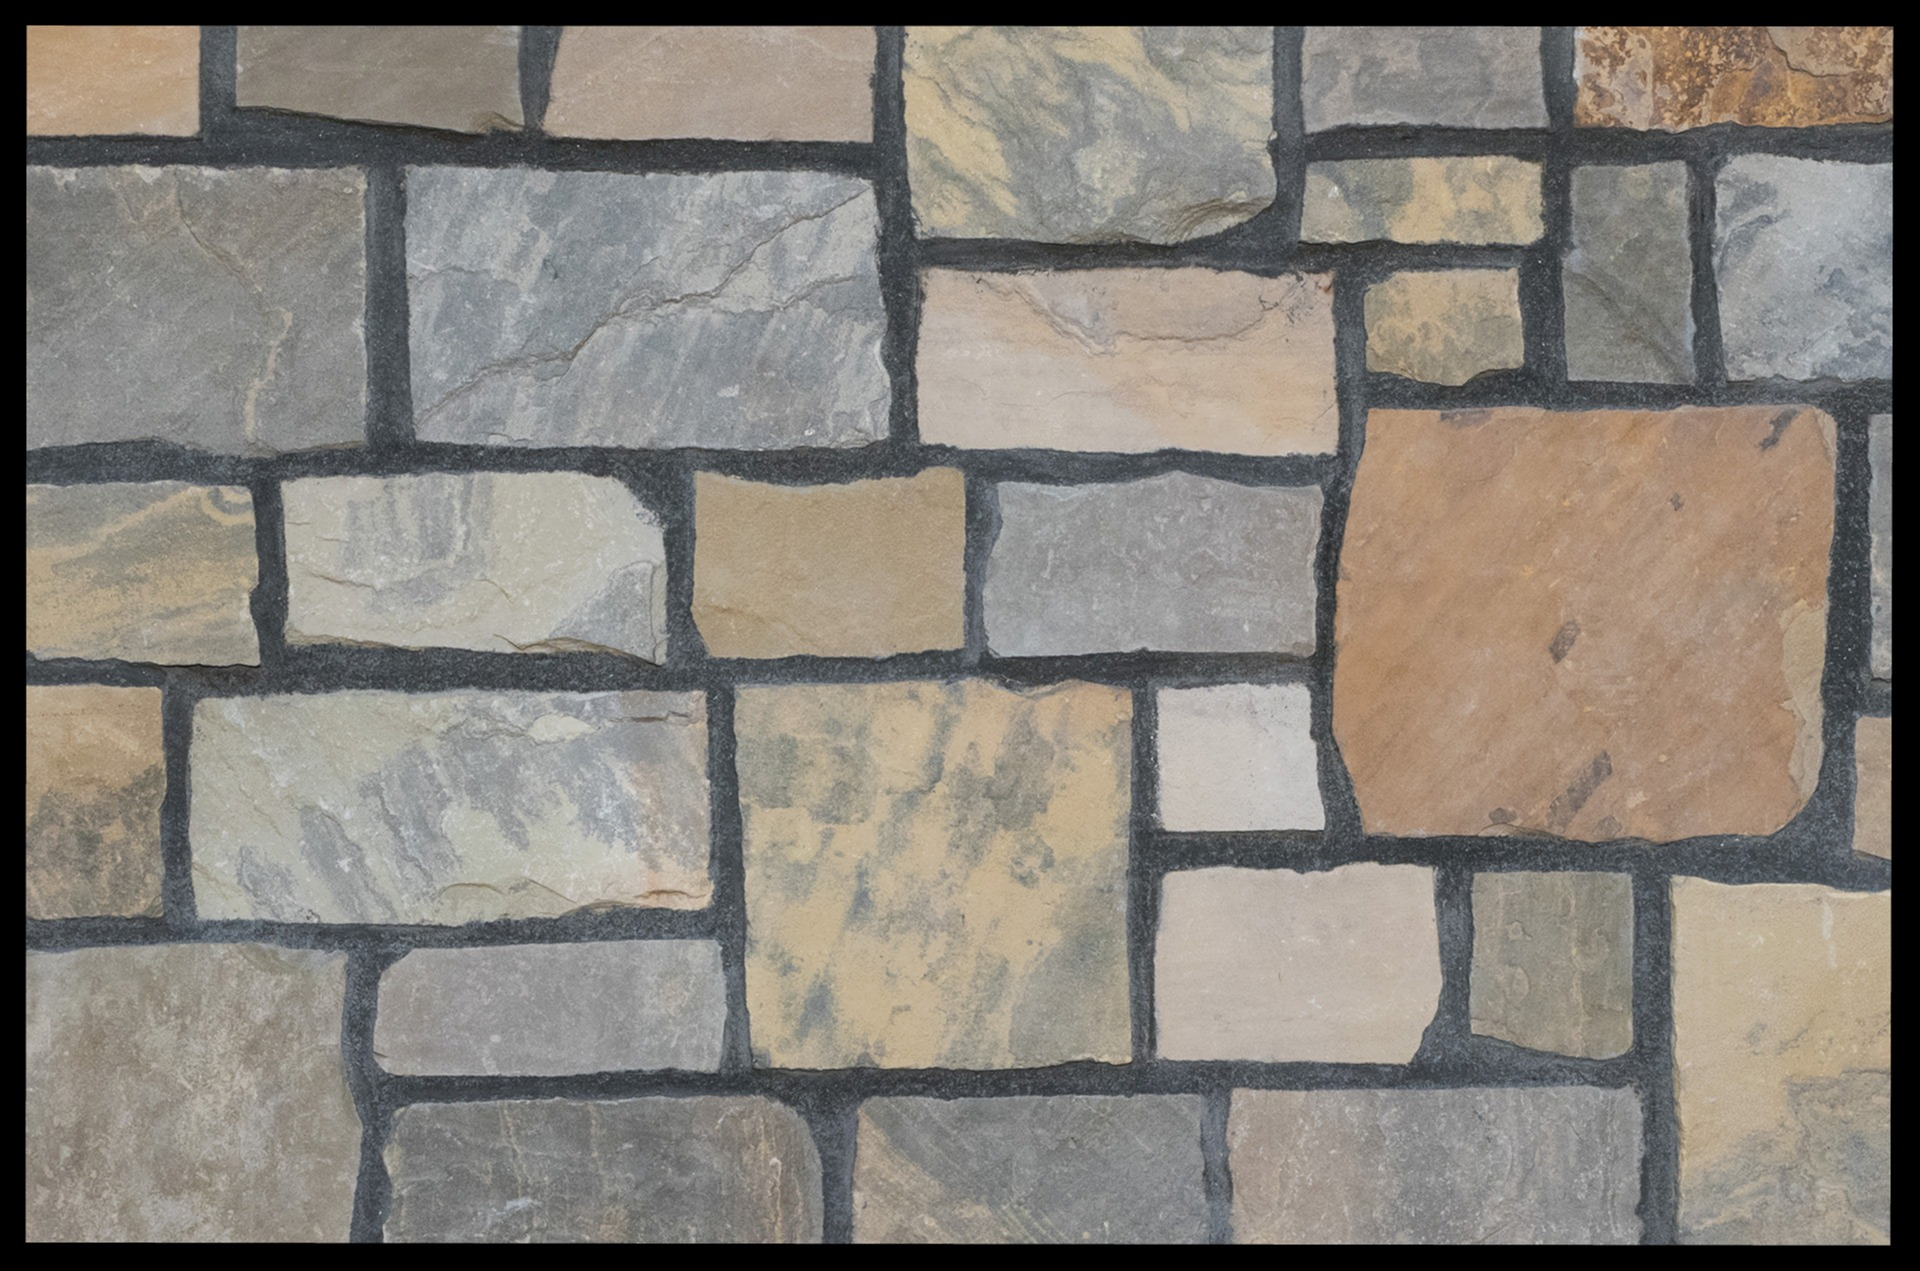 COPPER CANYON - (SANDSTONE)VIEW IN GALLERY